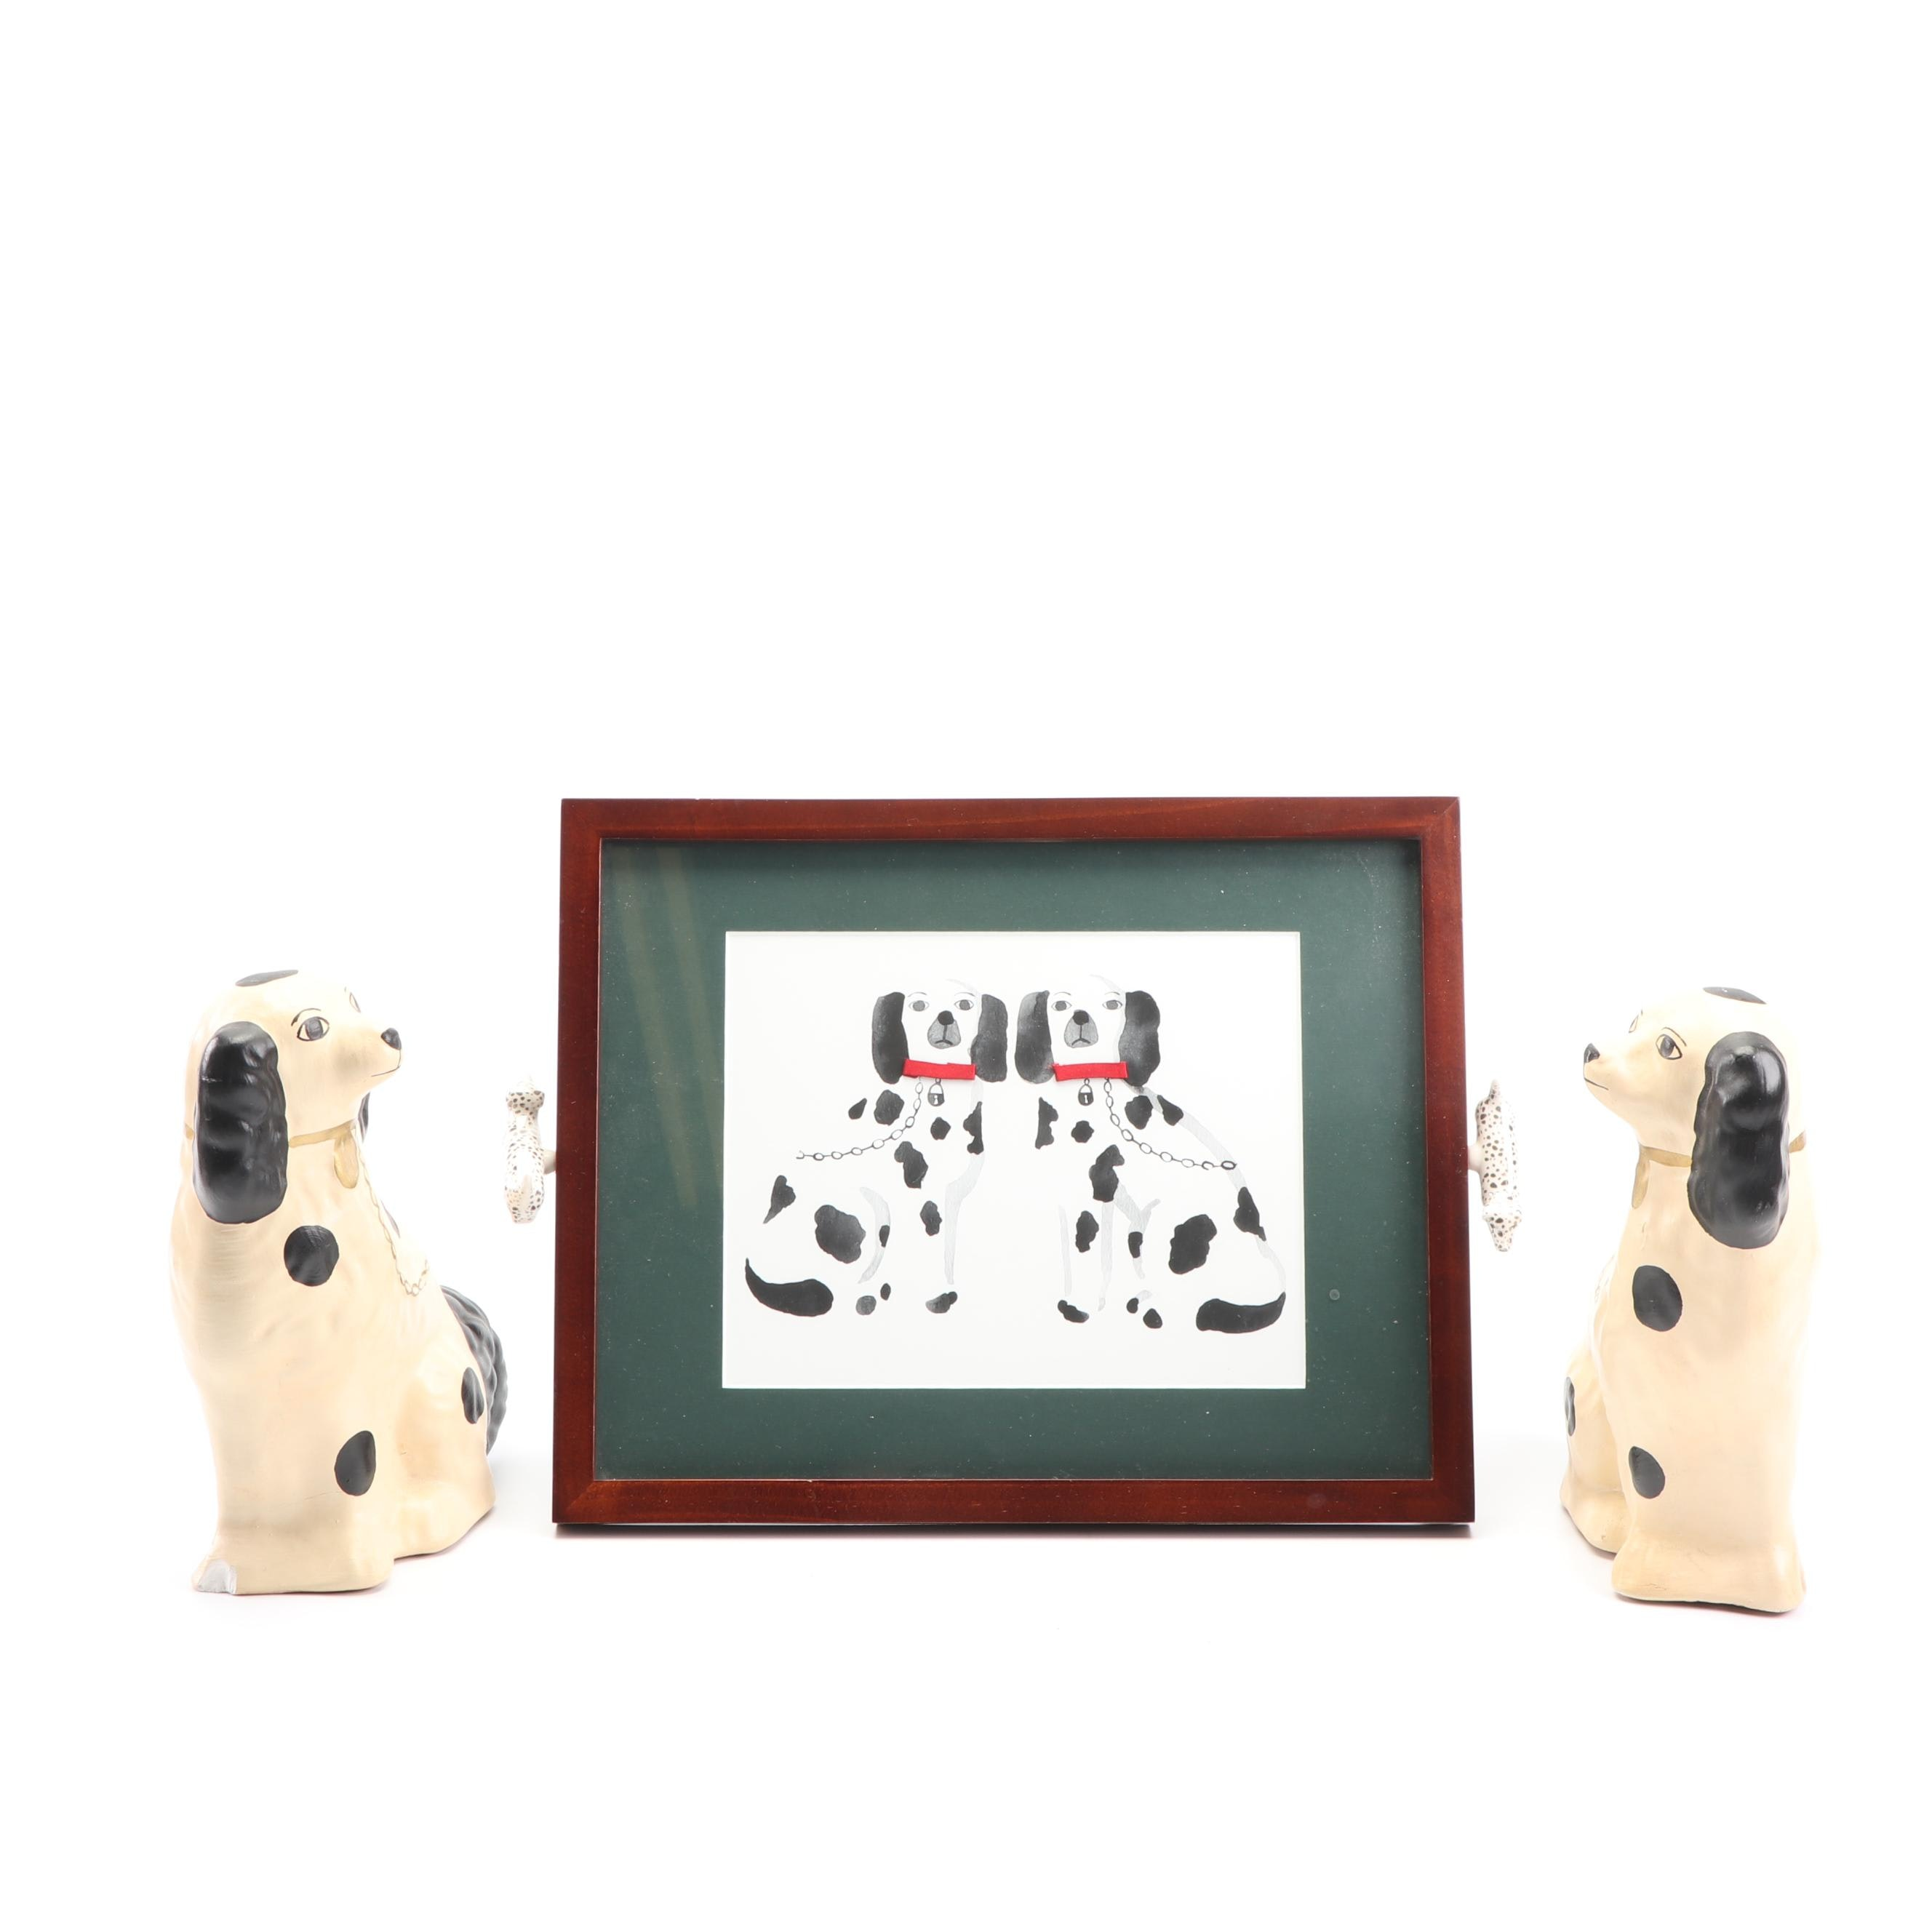 Spaniel Figurines and Framed Print of Spaniels